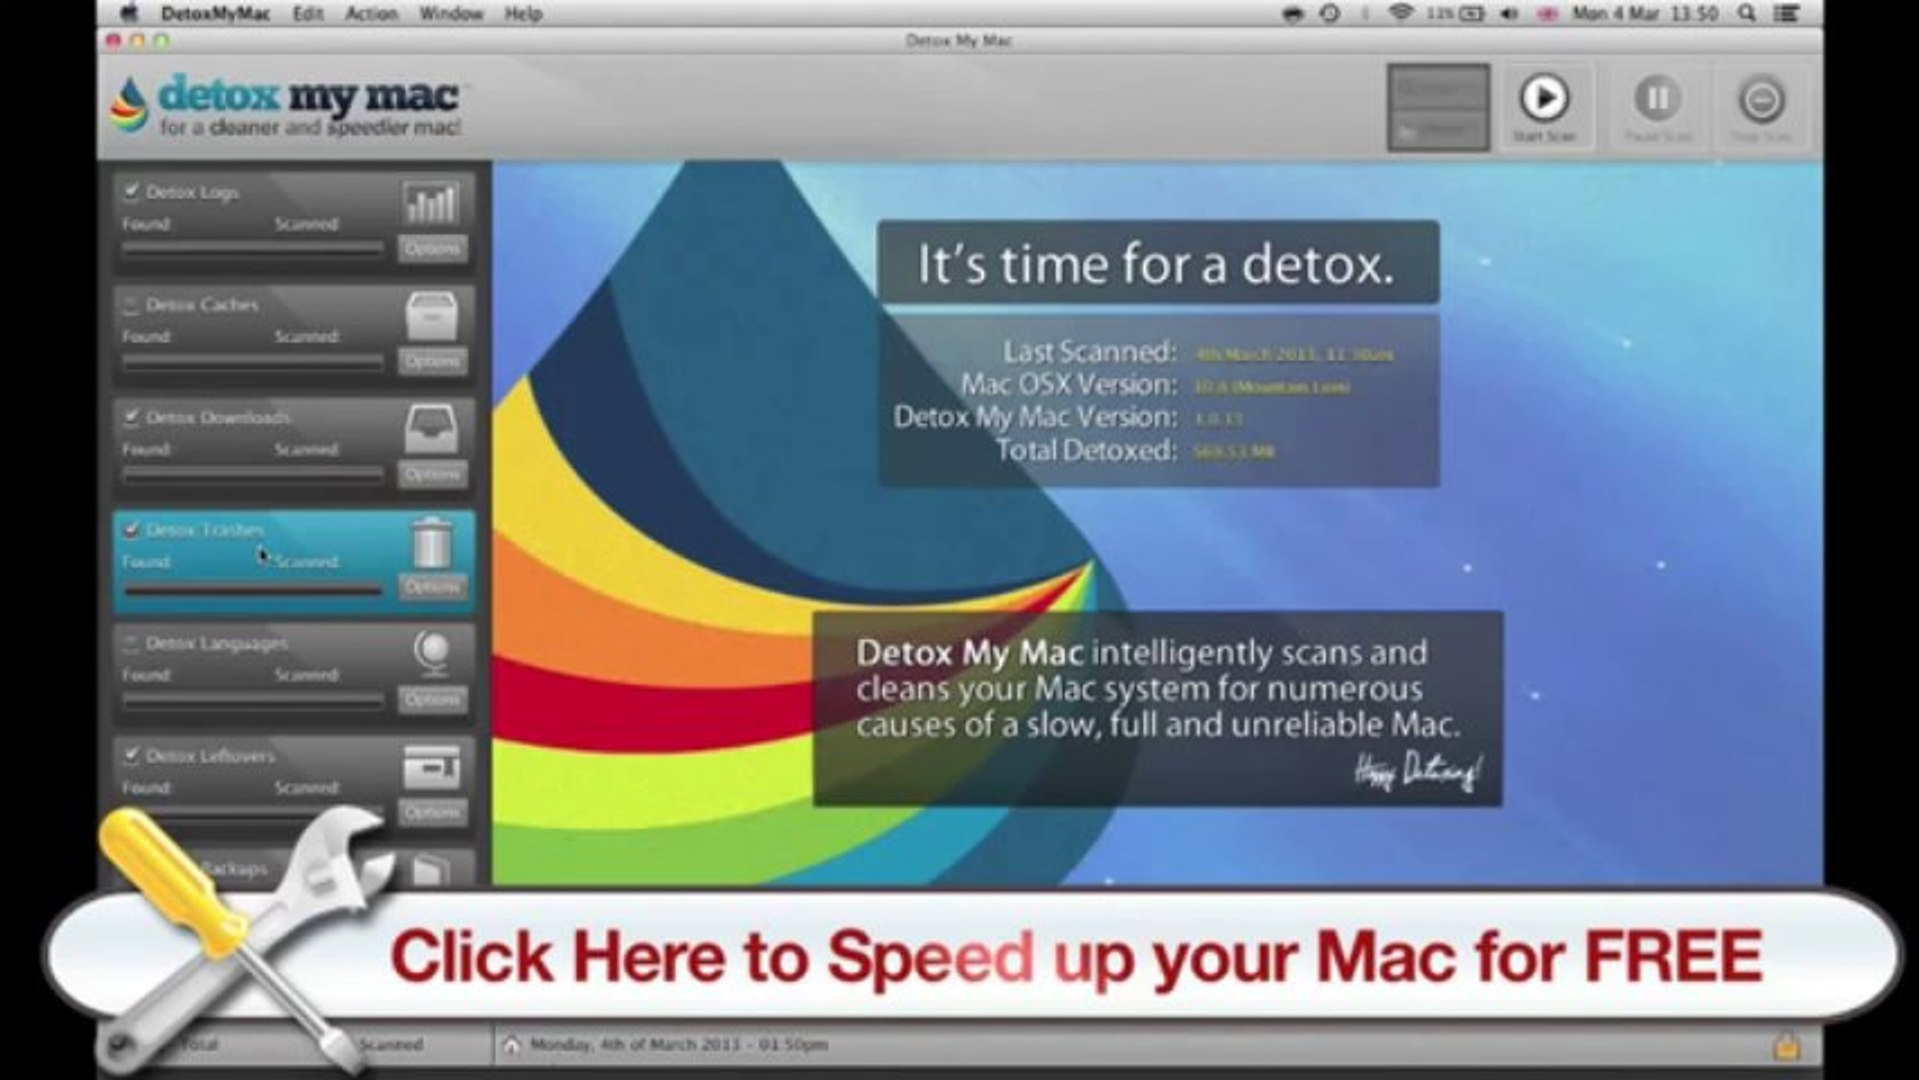 How to Speed Up Your Mac - Detox My Mac will Show You How to Speed Up Your Mac